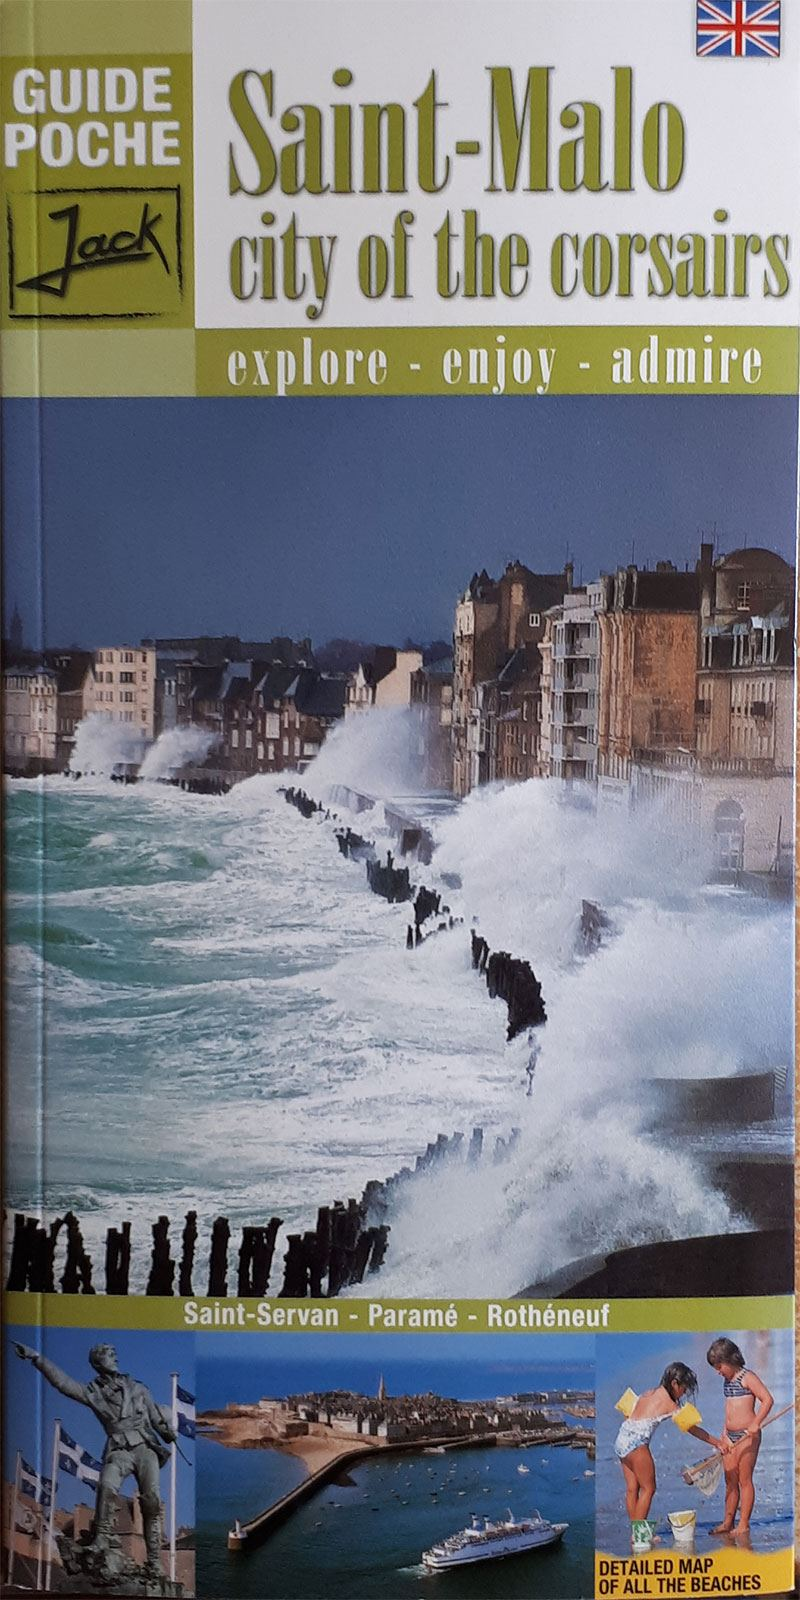 Pocket guide to Saint-Malo (version anglaise)